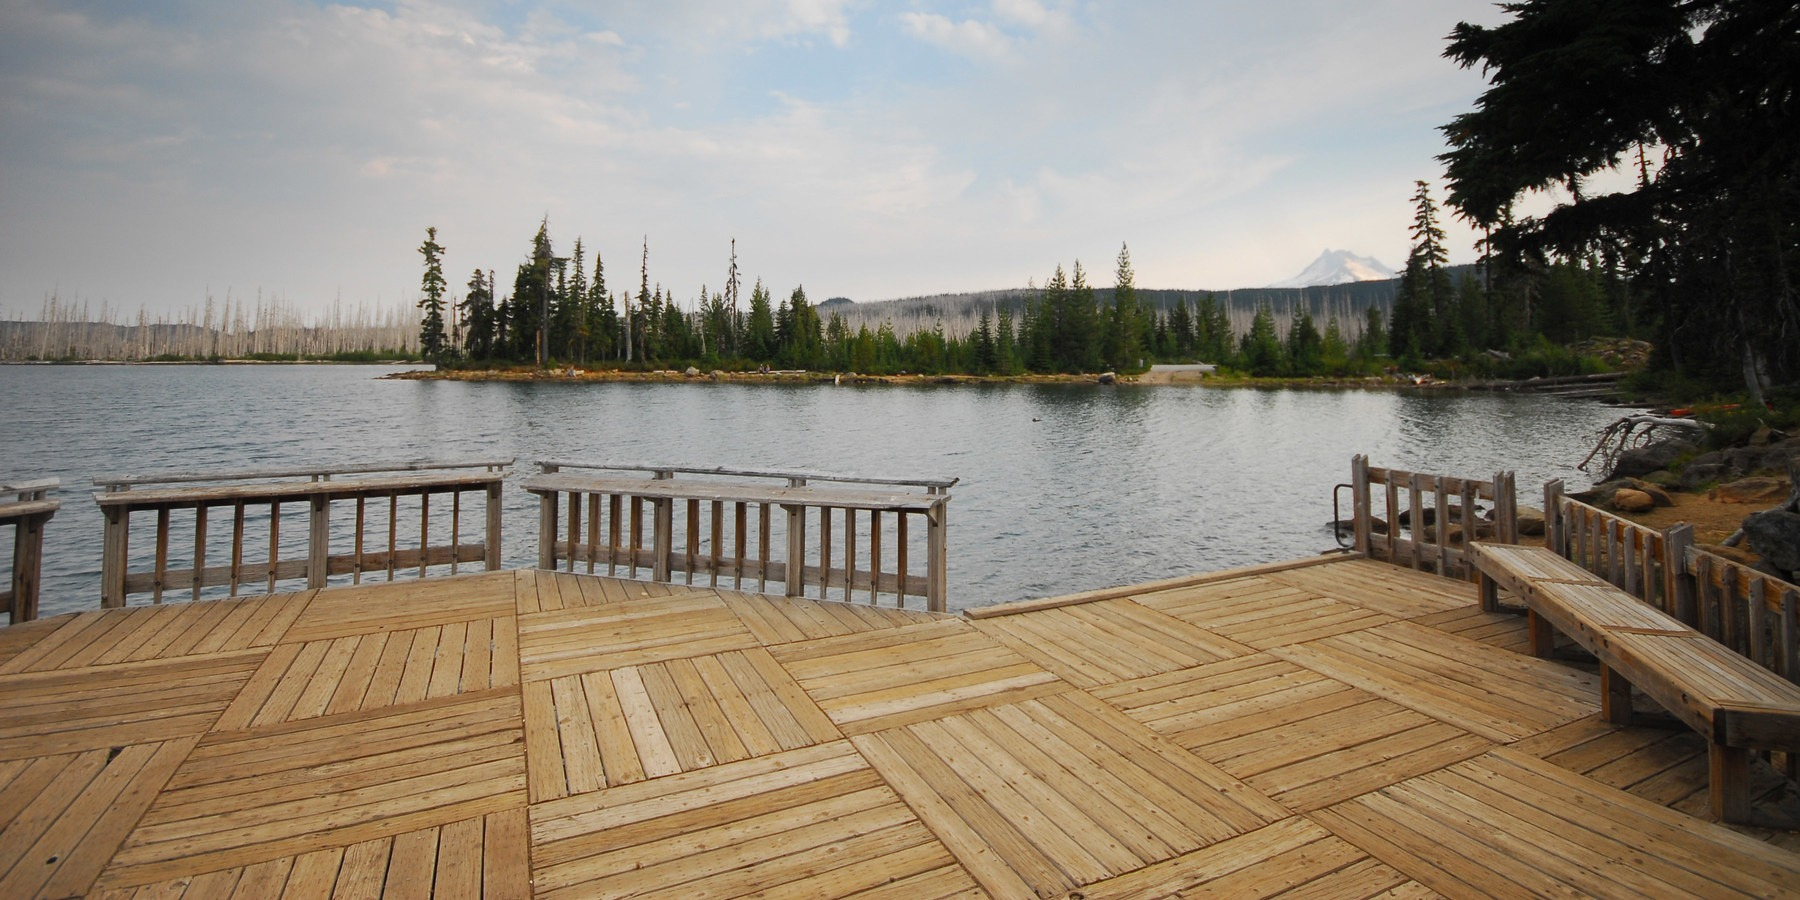 33 Irresistible Lake Camping Spots in Oregon - Outdoor Project